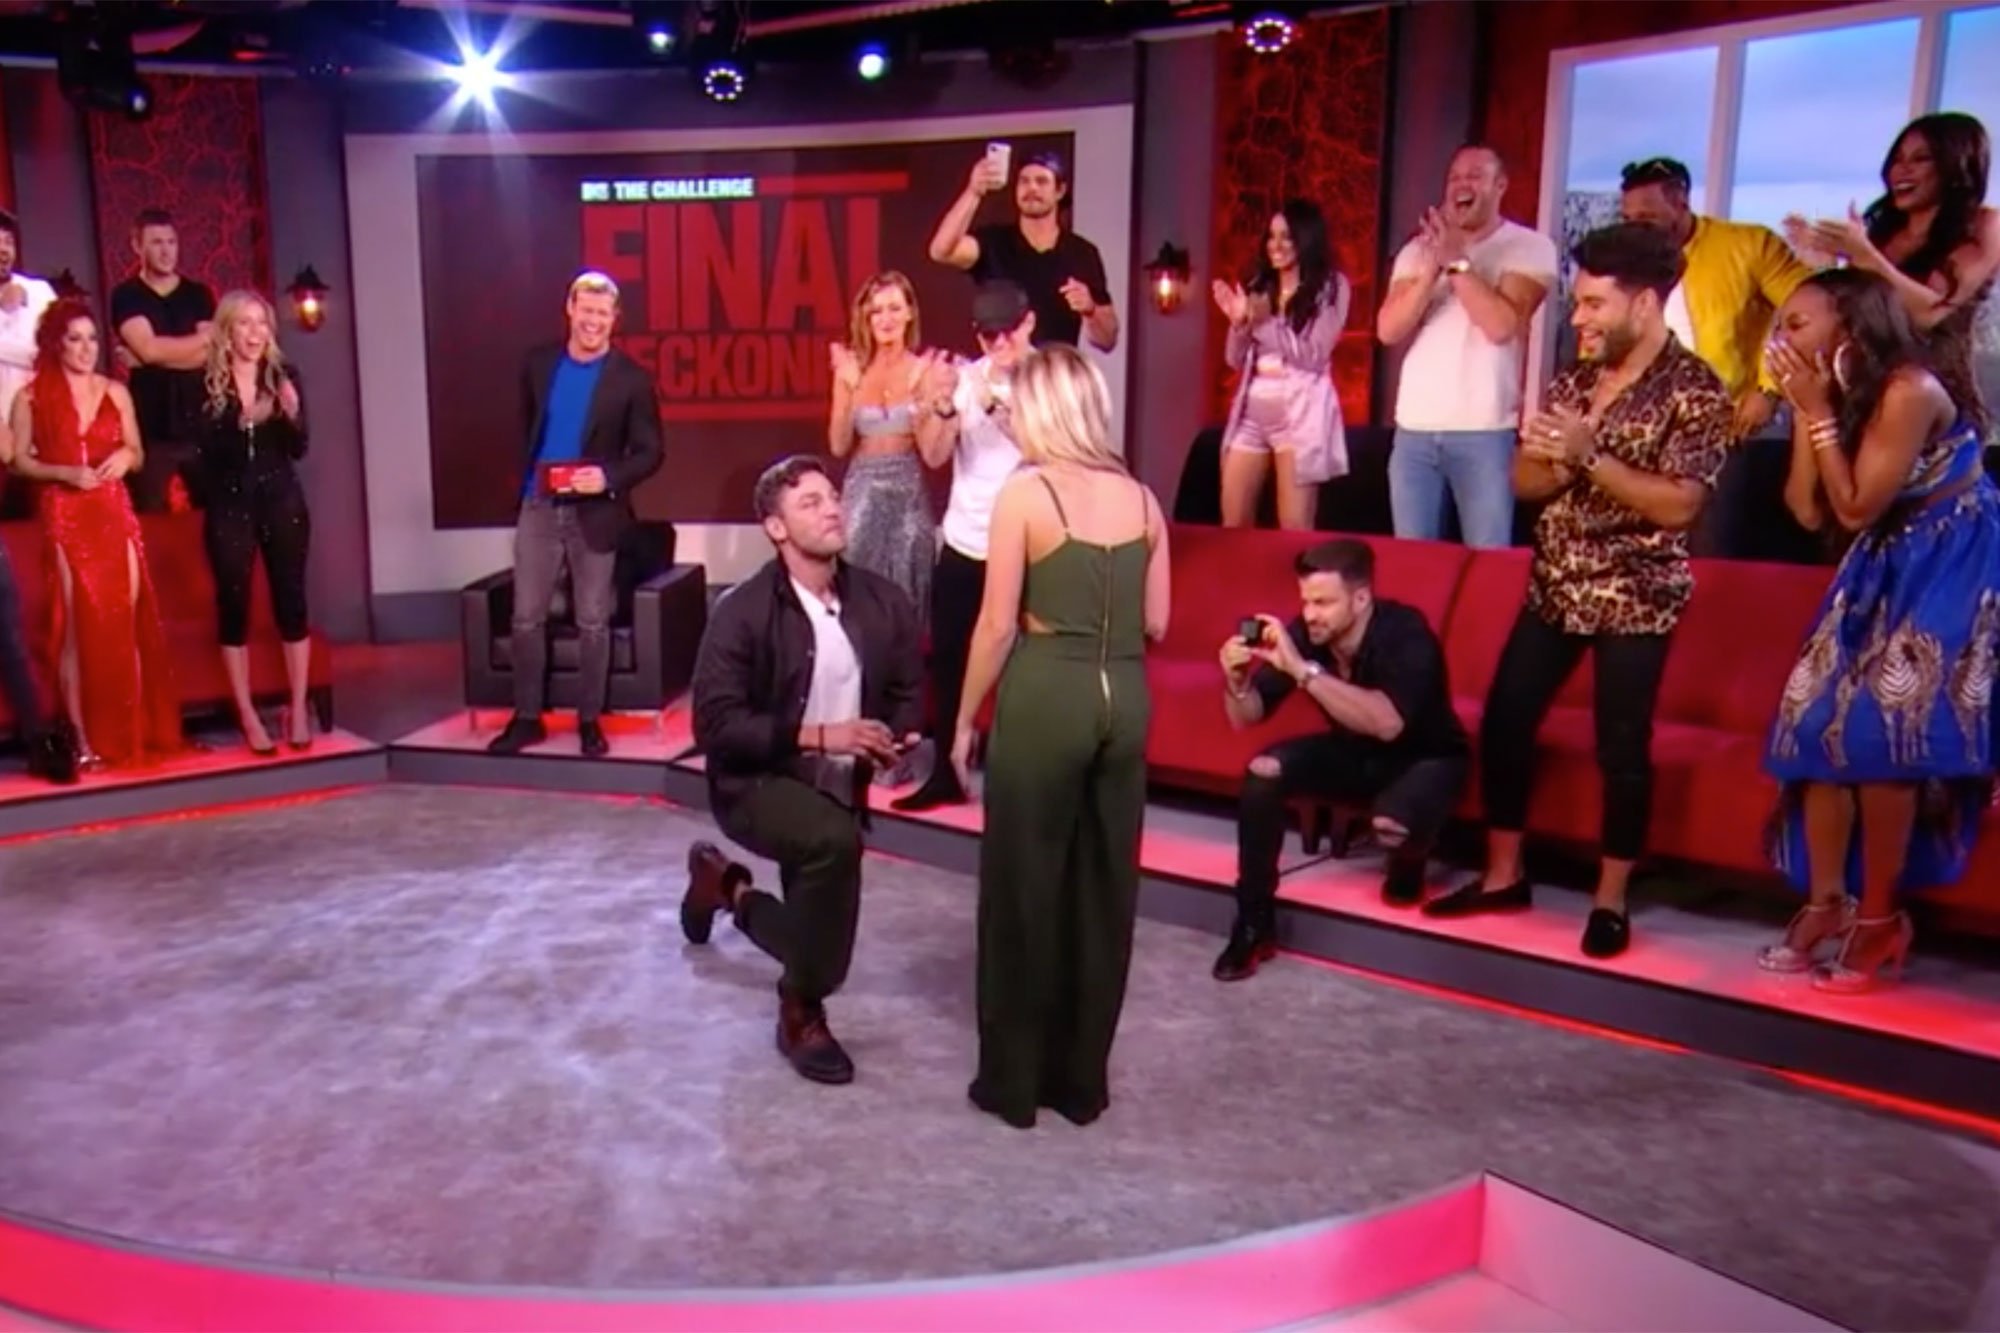 Tony Raines Gets Choked Up as He Pops the Question in The Challenge: Final Reckoning Reunion Clip